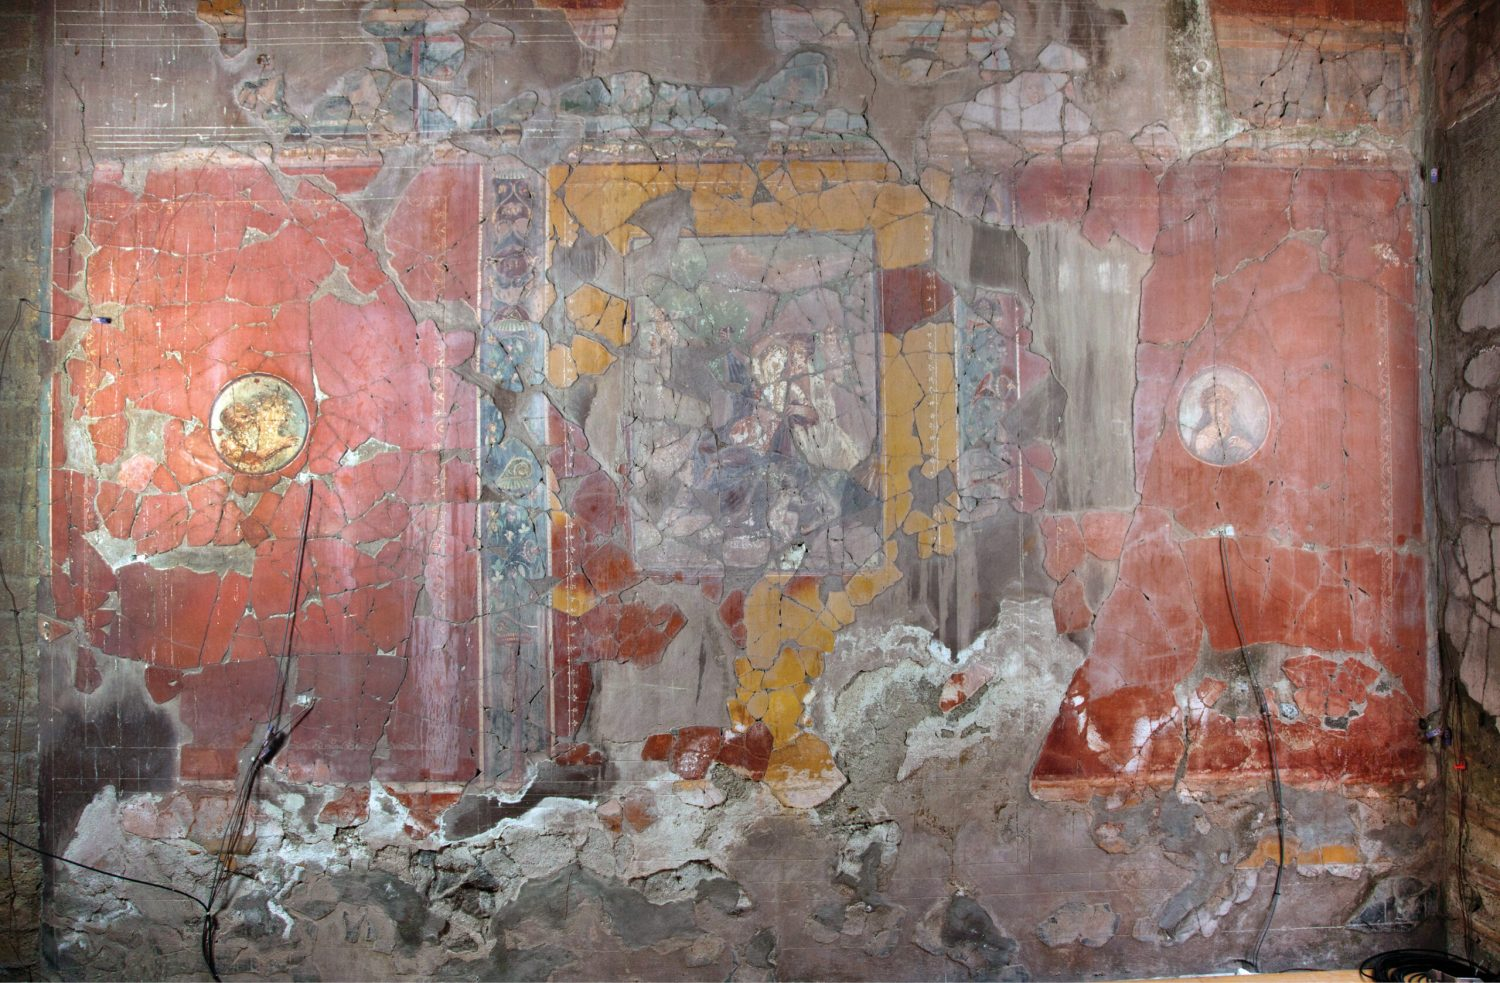 below From the 1980s, the House of the Bicentenary was closed to visitors due to structural issues and deferred maintenance. This led to severe deterioration of the wall paintings and mosaics. Salt activity from rising damp led to erosion and loss of paint along the base of the wall, and water infiltration from roof leaks left drips down the surface.